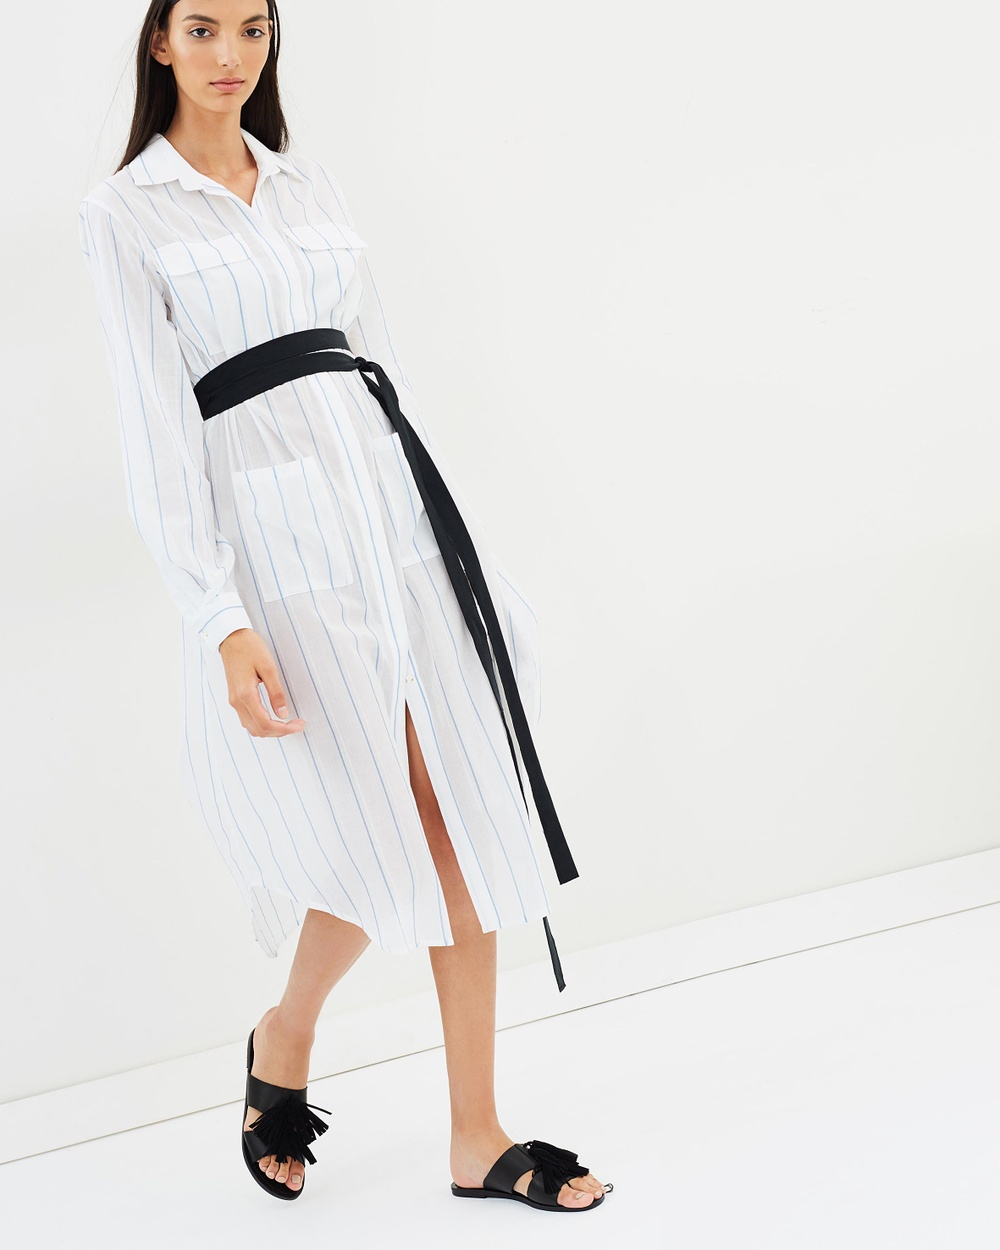 Matin Long Shirt Dress with Tie Dresses White Long Shirt Dress with Tie